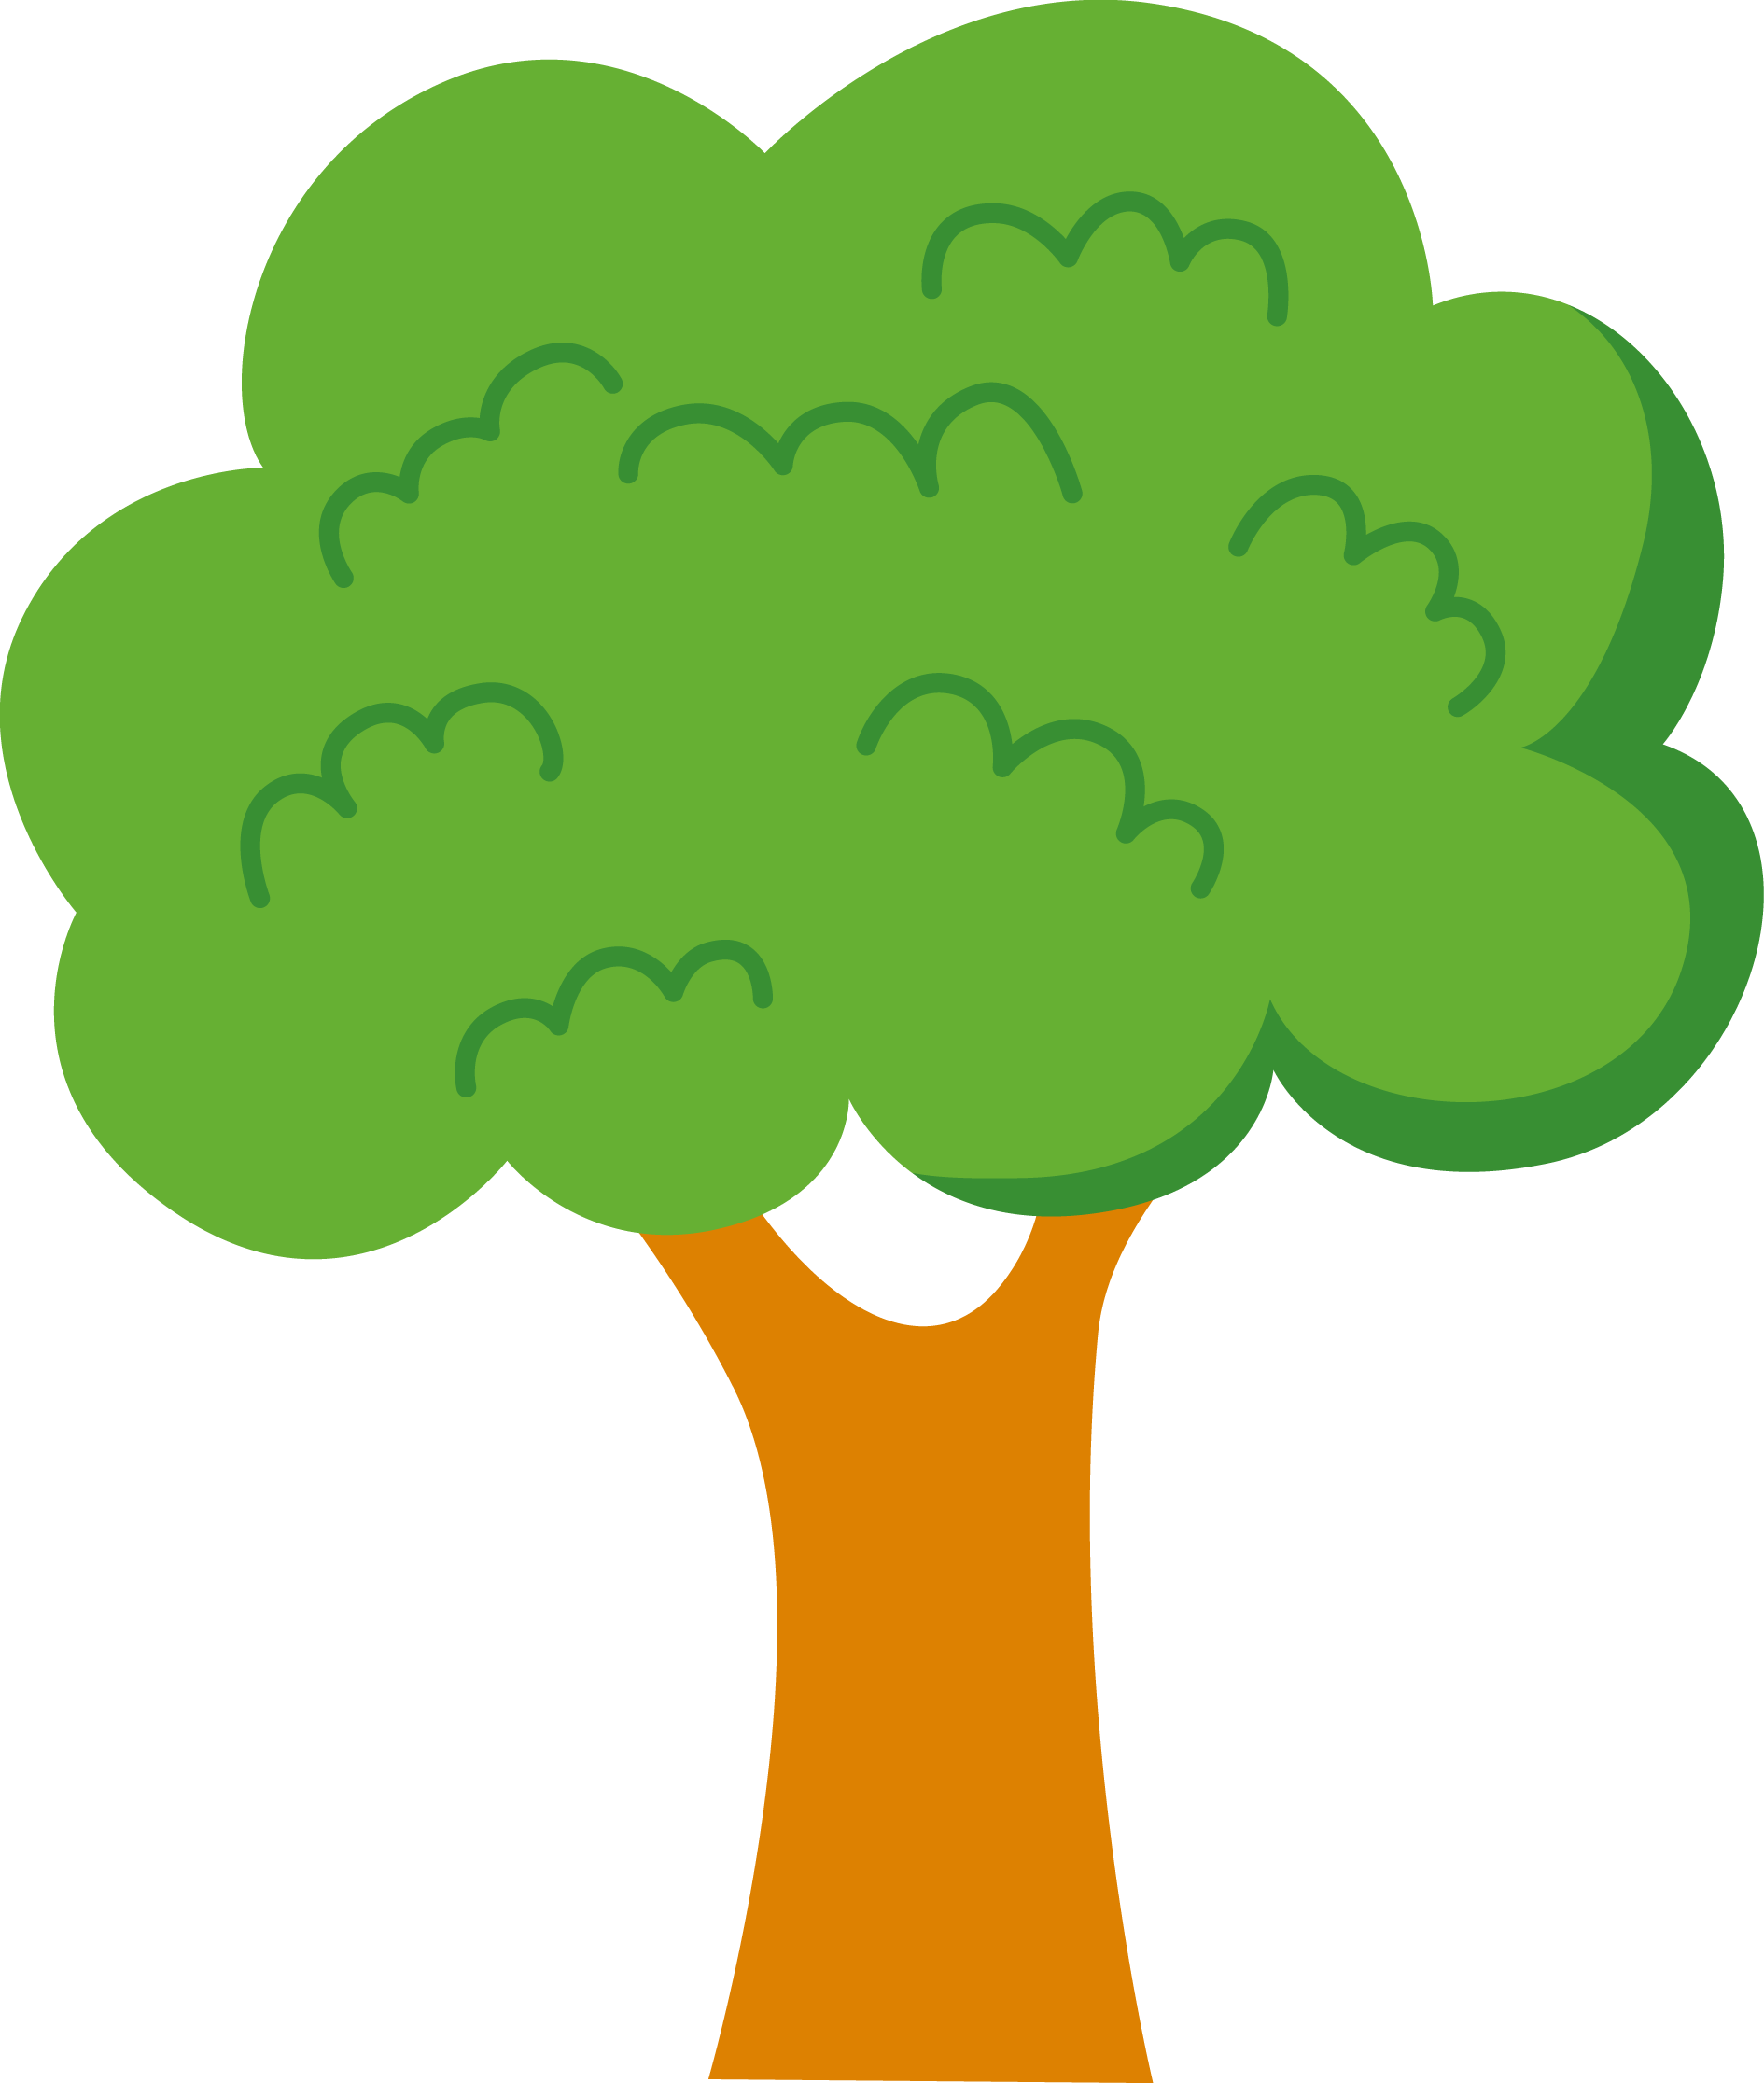 35 green tree clipart. | Clipart Panda - Free Clipart Images ...